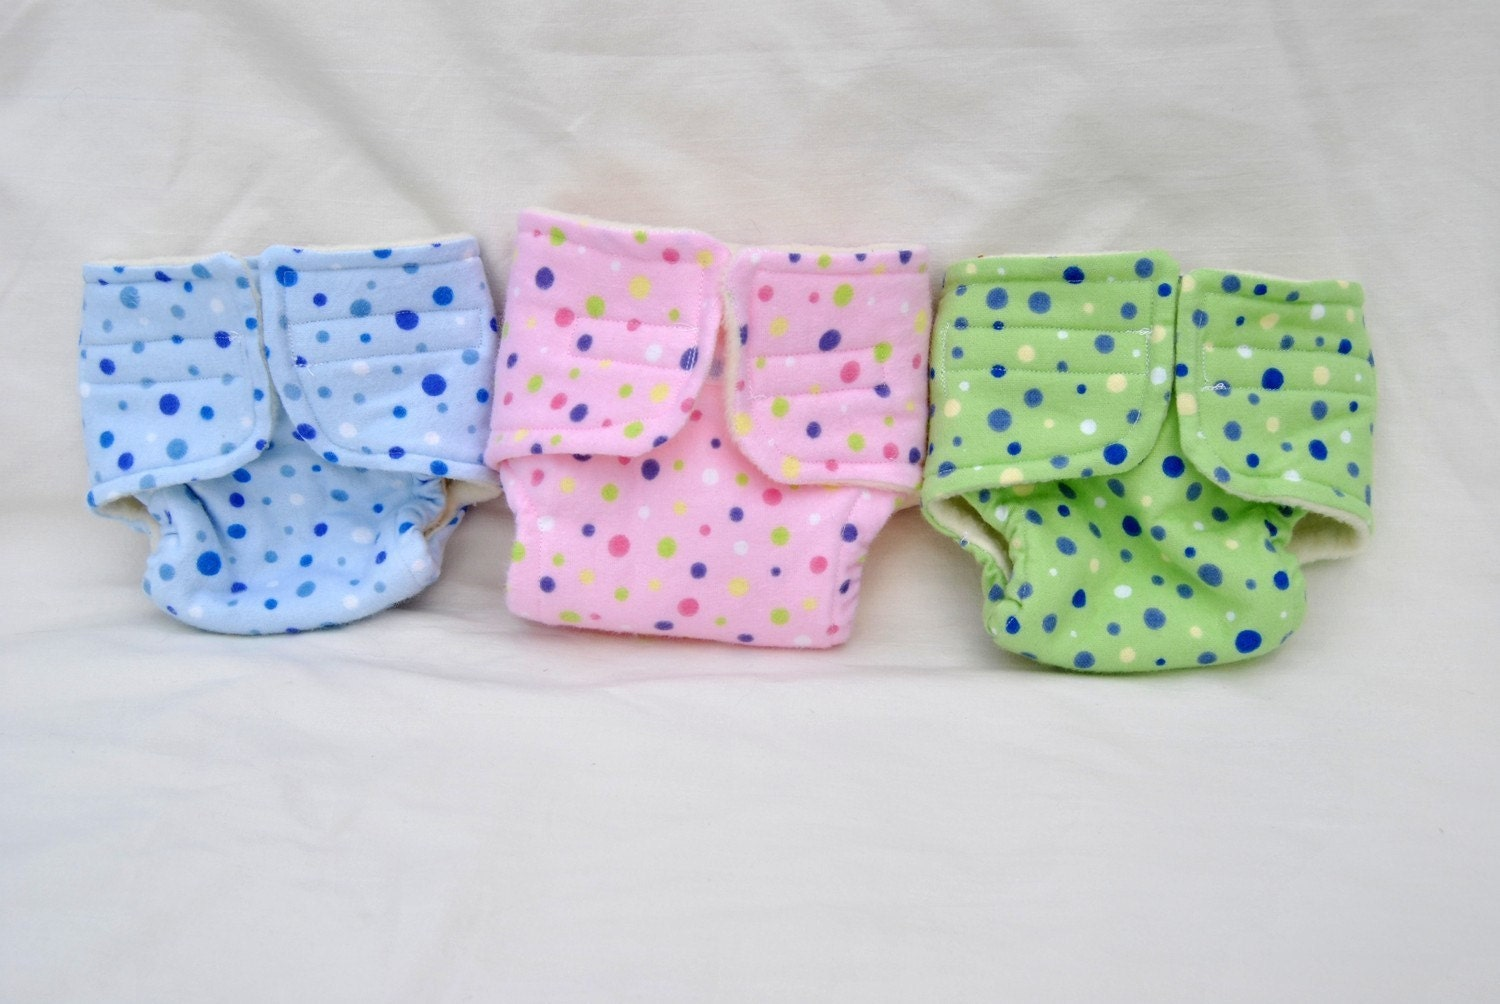 The Dot Collection - Flannel and Fleece Baby Doll Cloth Diapers - Set of three diapers